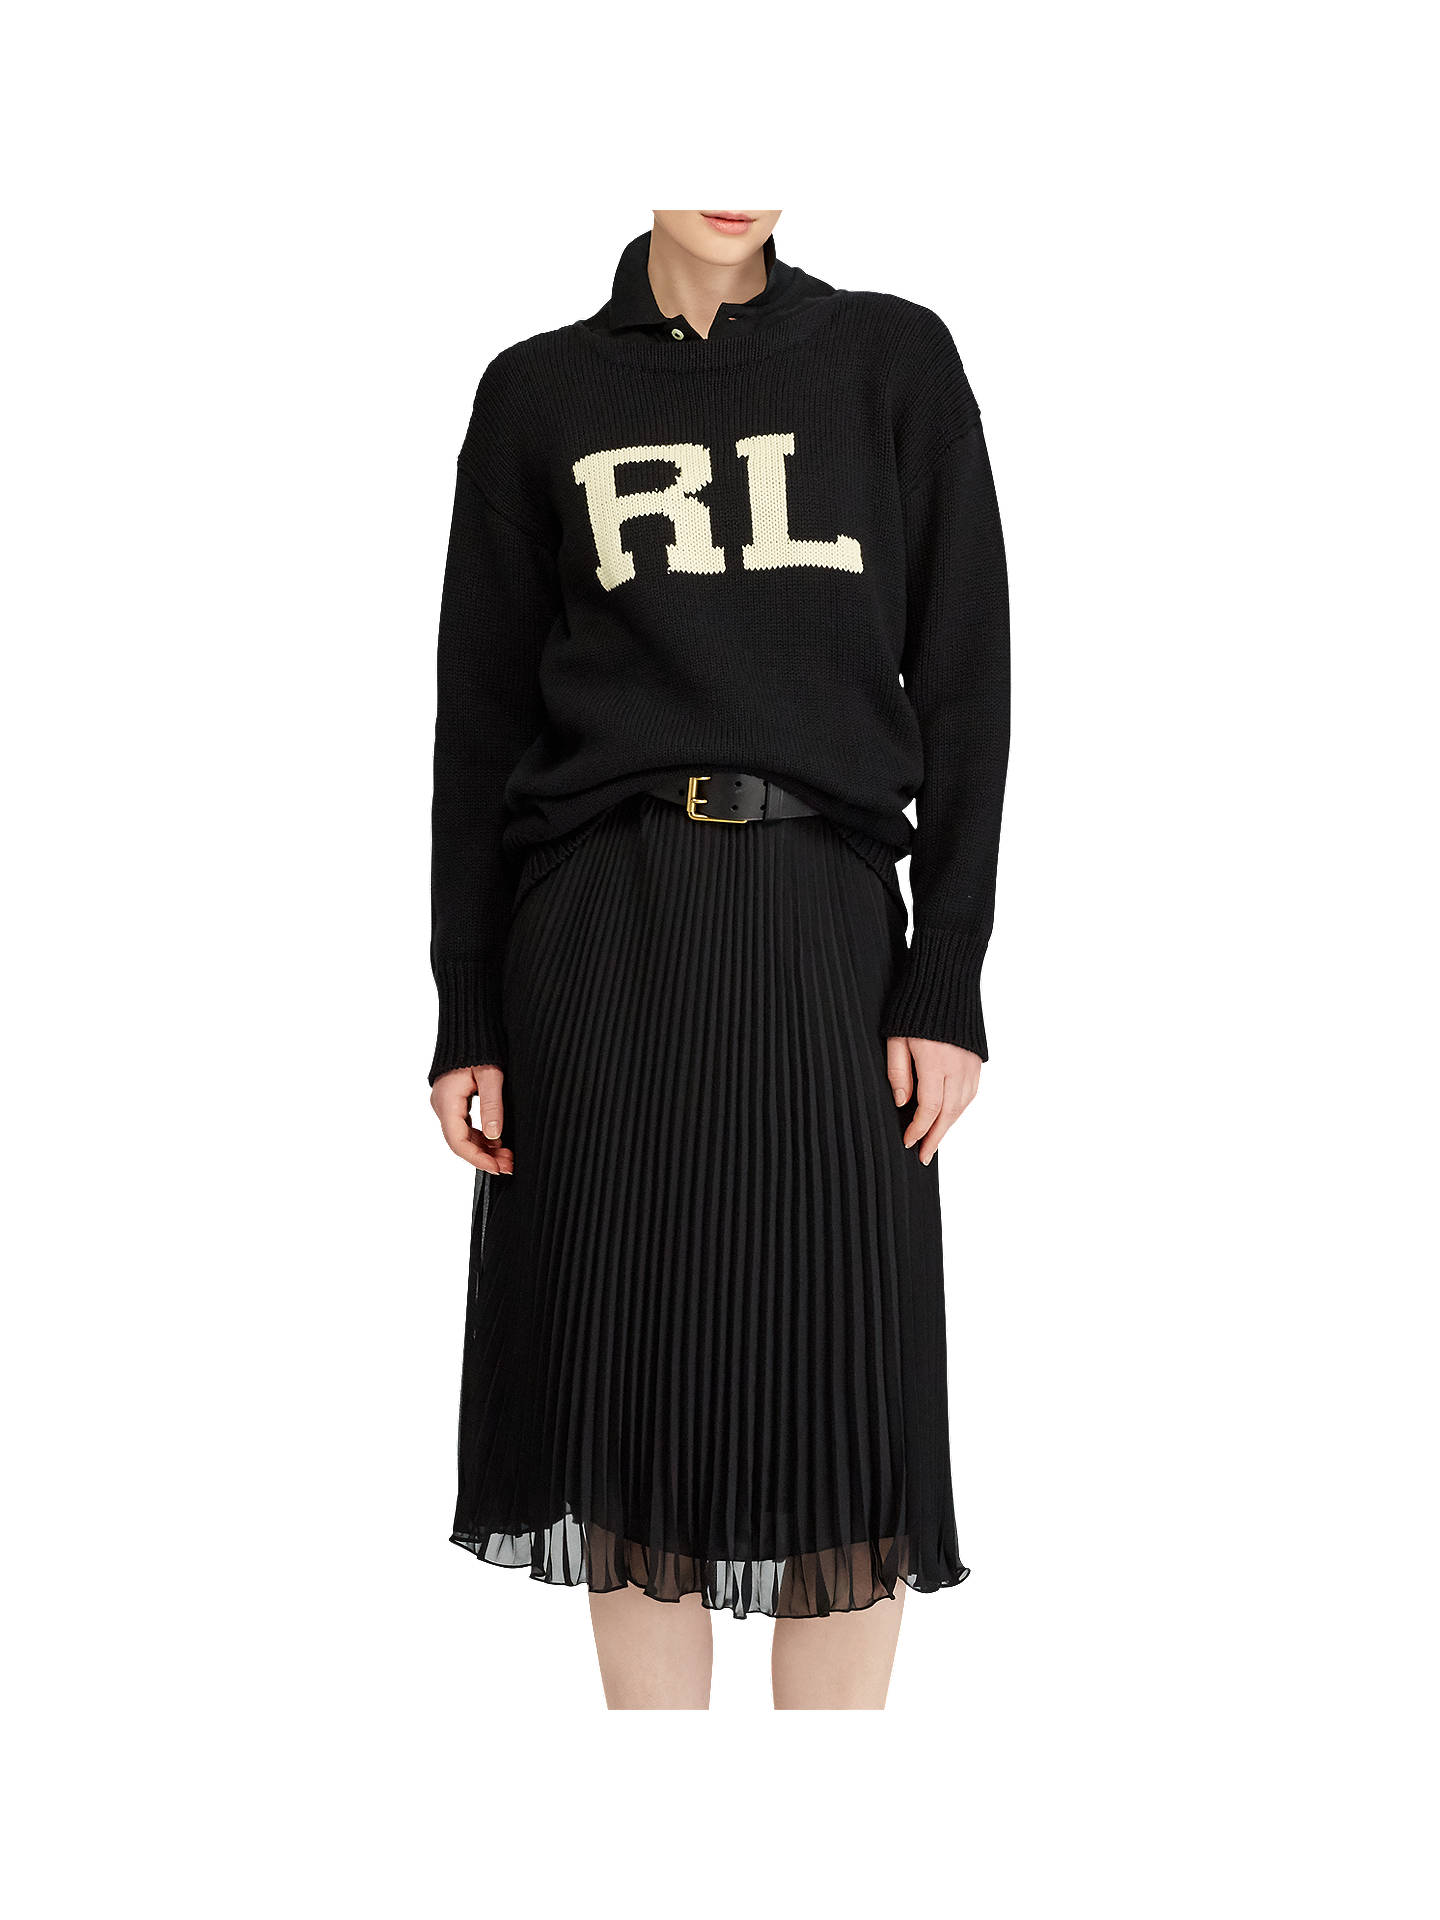 BuyPolo Ralph Lauren Intarsia Jumper, Black/Cream, XS Online at johnlewis.com